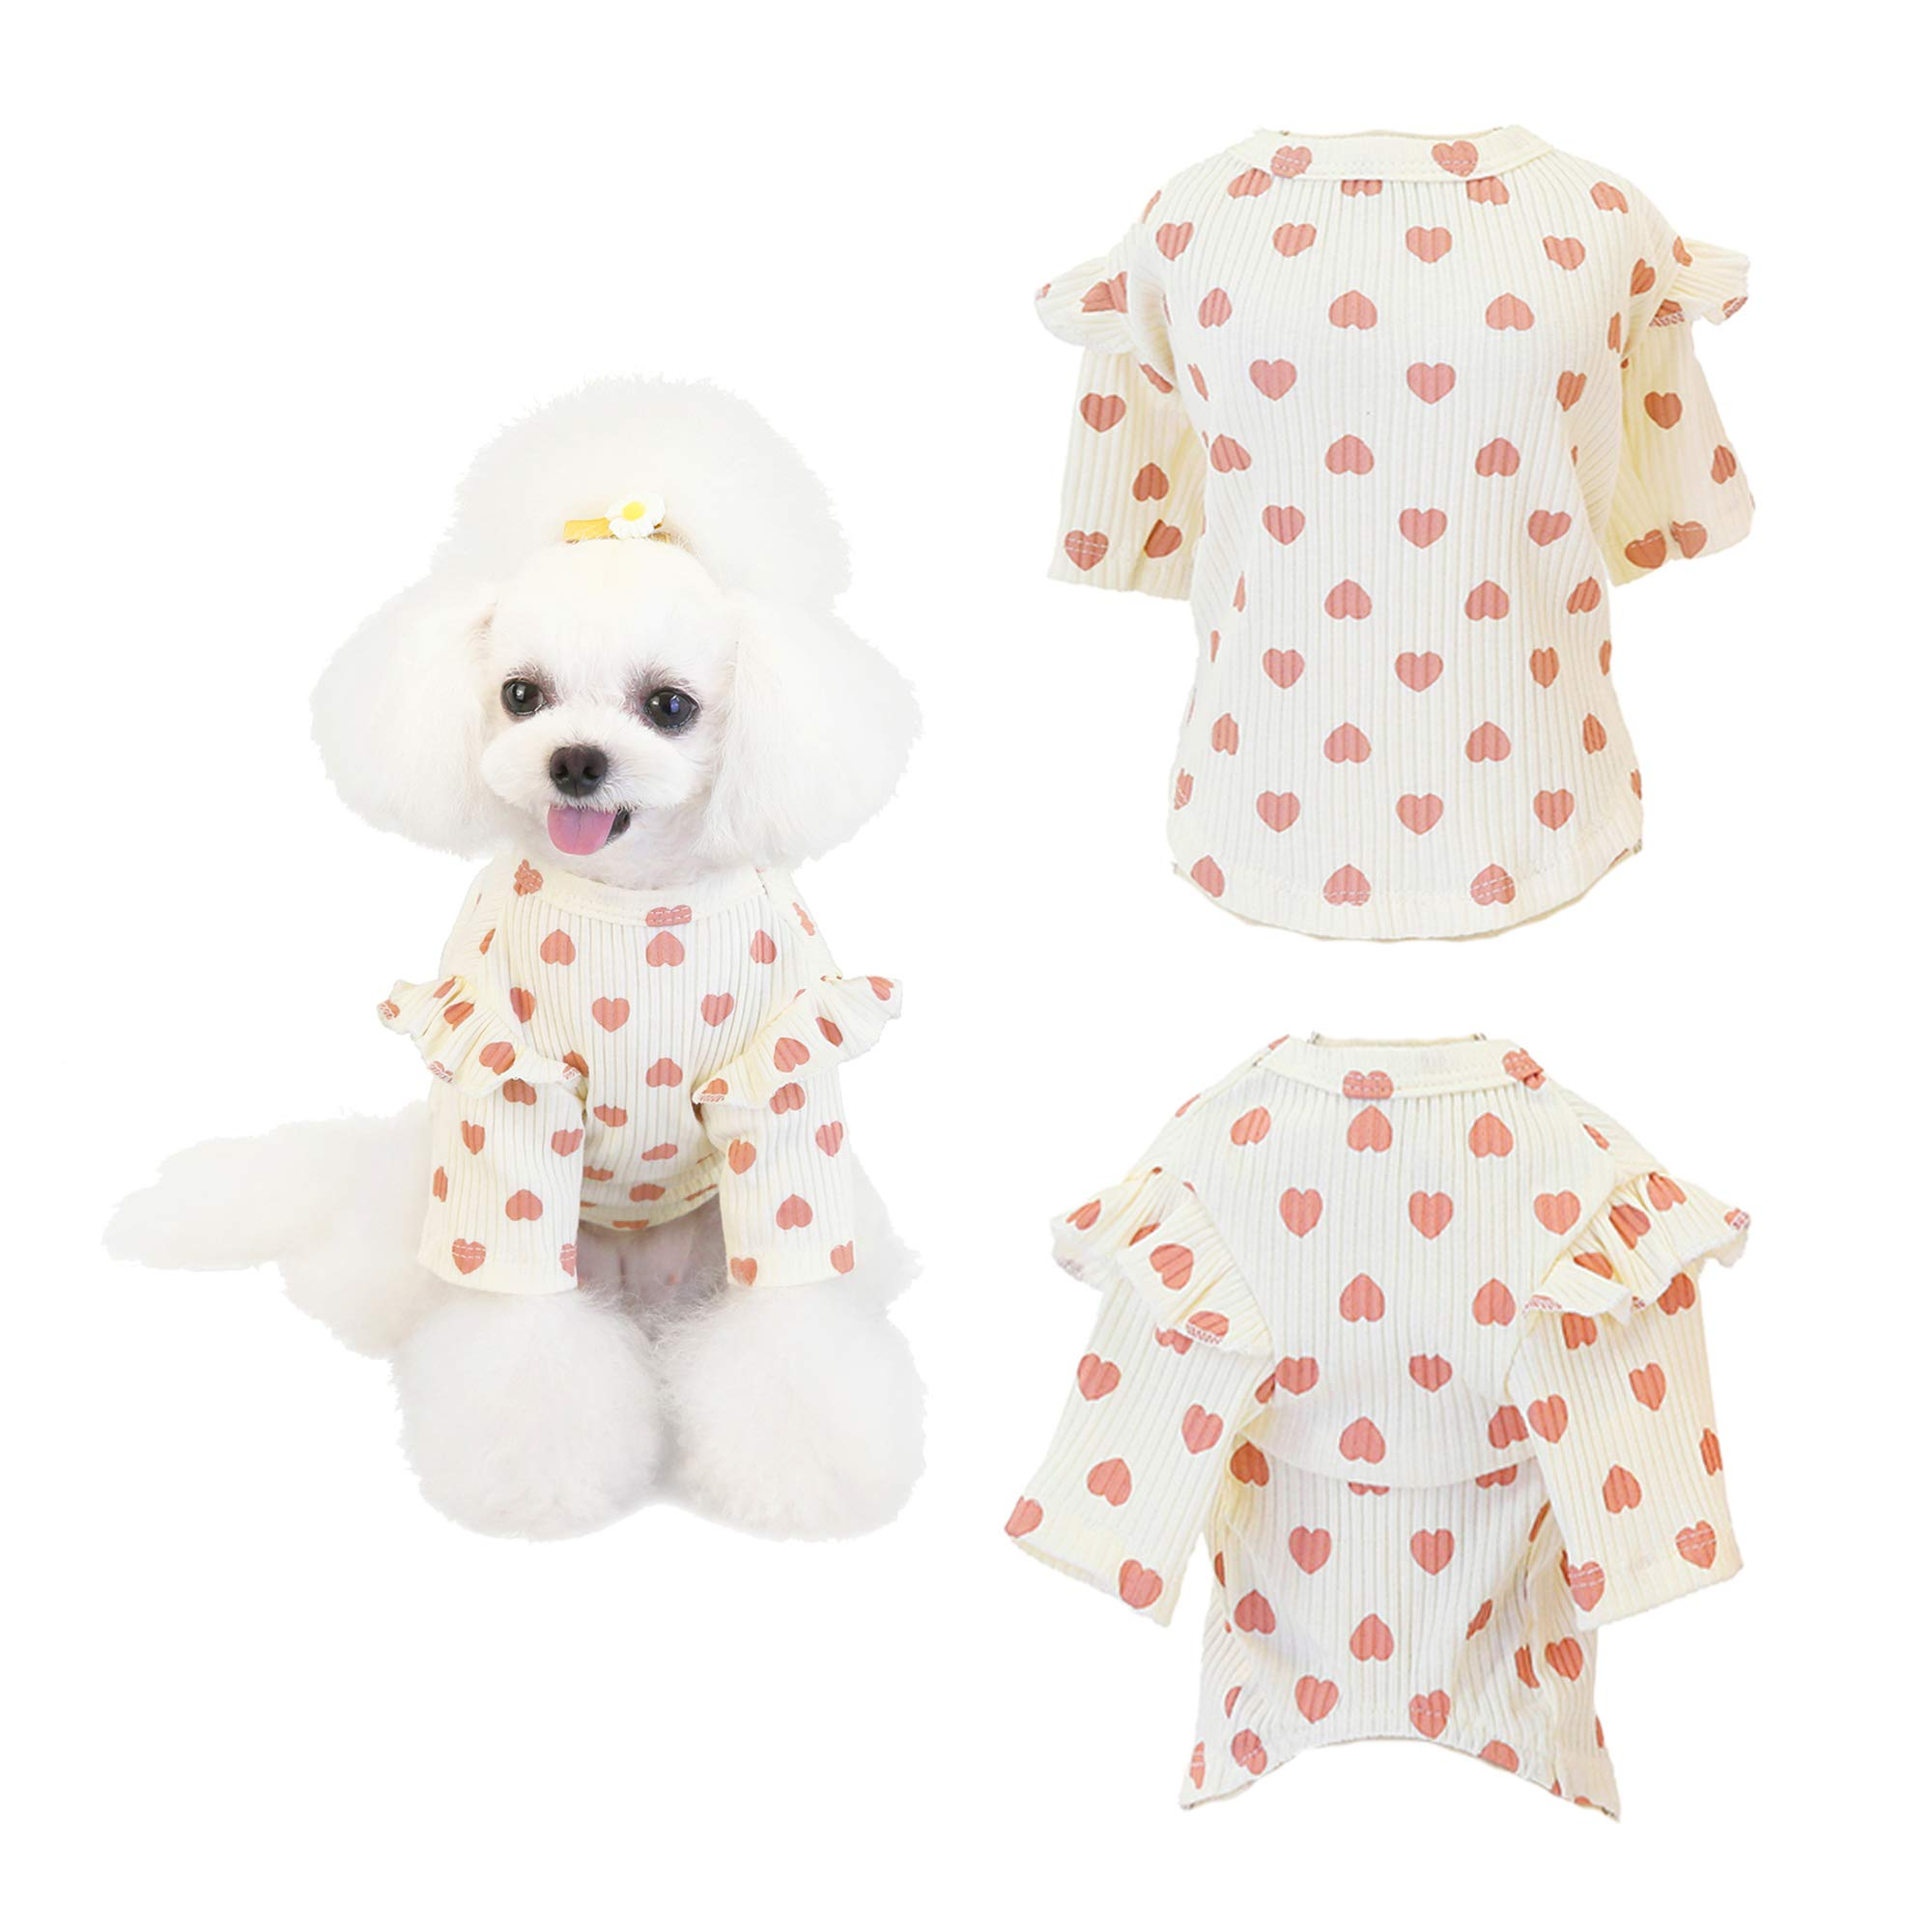 Xqpetlihai Dog Shirt with Short Sleeve Breathable Soft not Shrink Cotton Pet Apparel Dog T-Shirt with Heart Pattern for Small Medium Dogs Puppy Cats Kitten(White M)